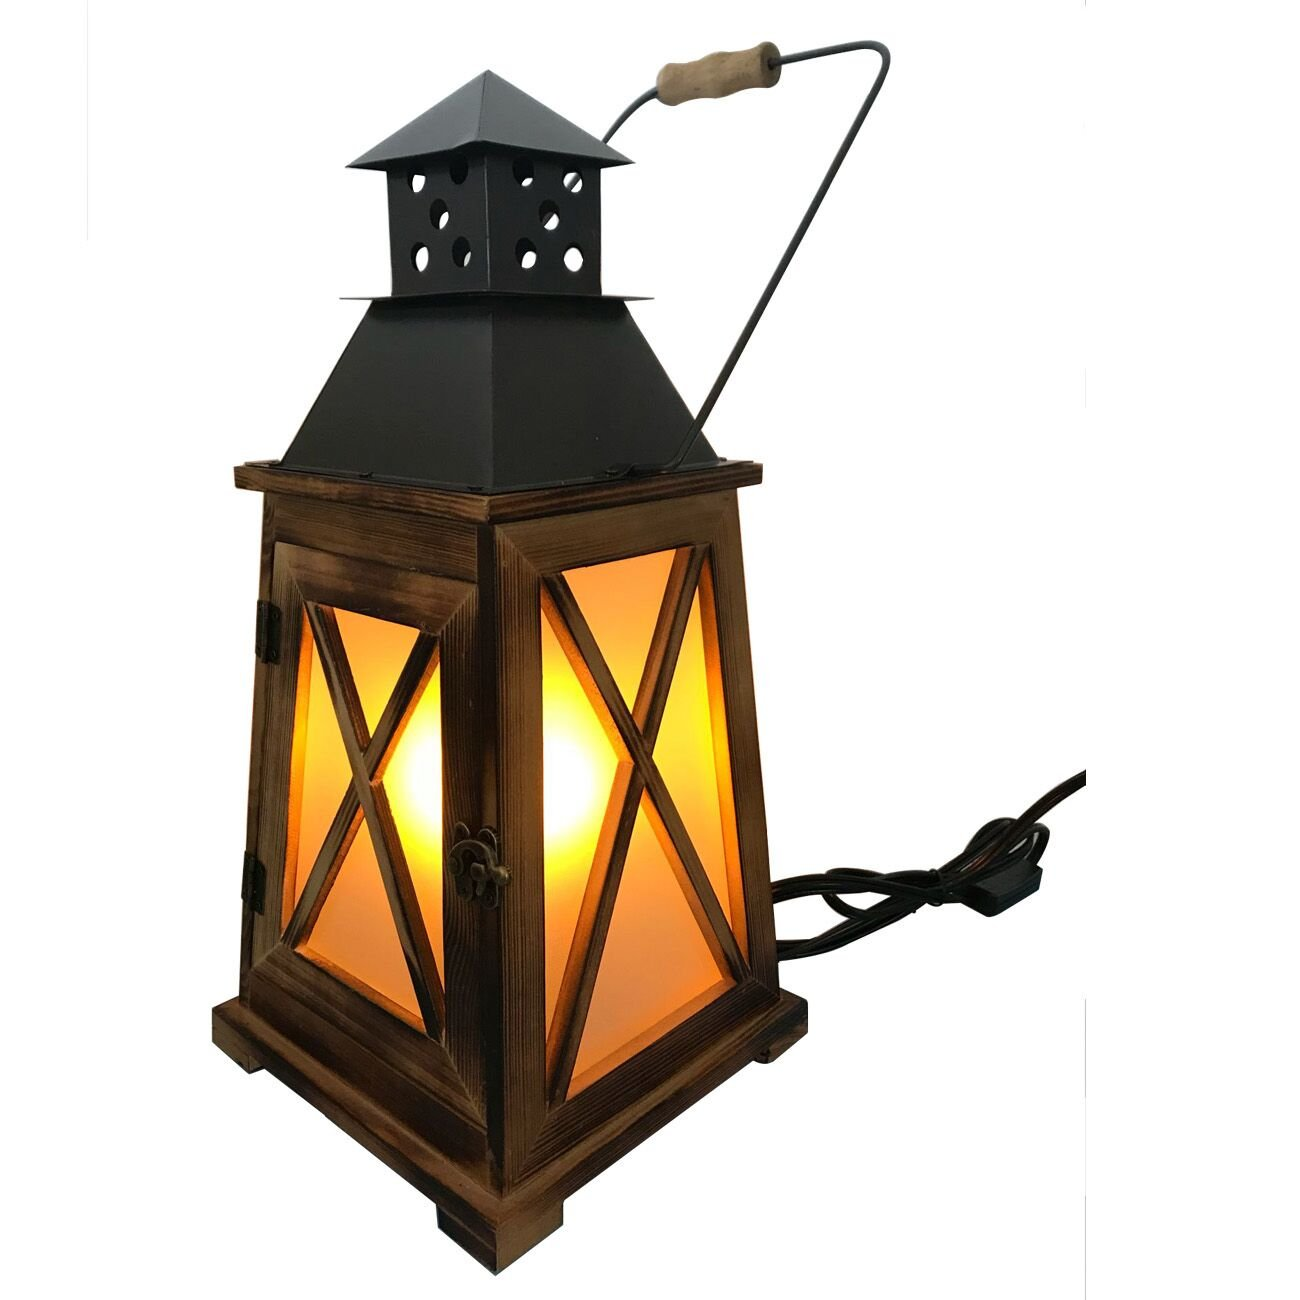 Vintage Wood Lantern Nautical Decorative Industrial Retro Light Fixture Table Lamp Decor with Cord Cable for Flame Bulb Frosted Glass Lantern